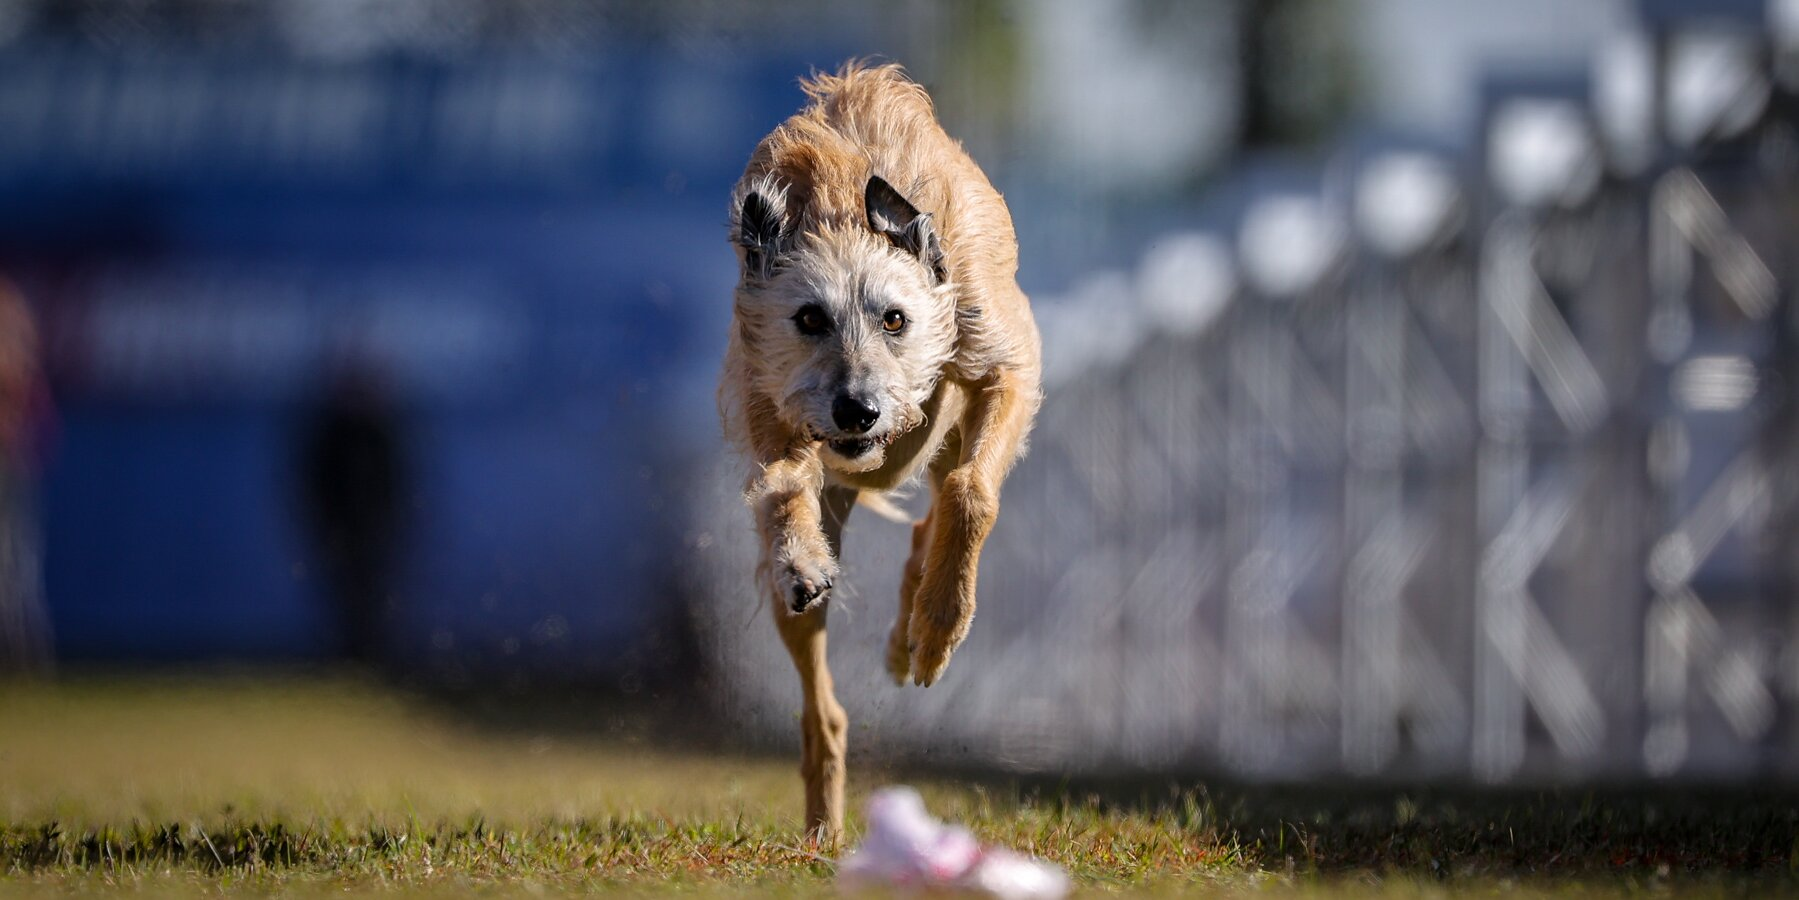 Rescue Pup Beats Out Famously Fast Purebreds in AKC's Fastest Dog USA Race